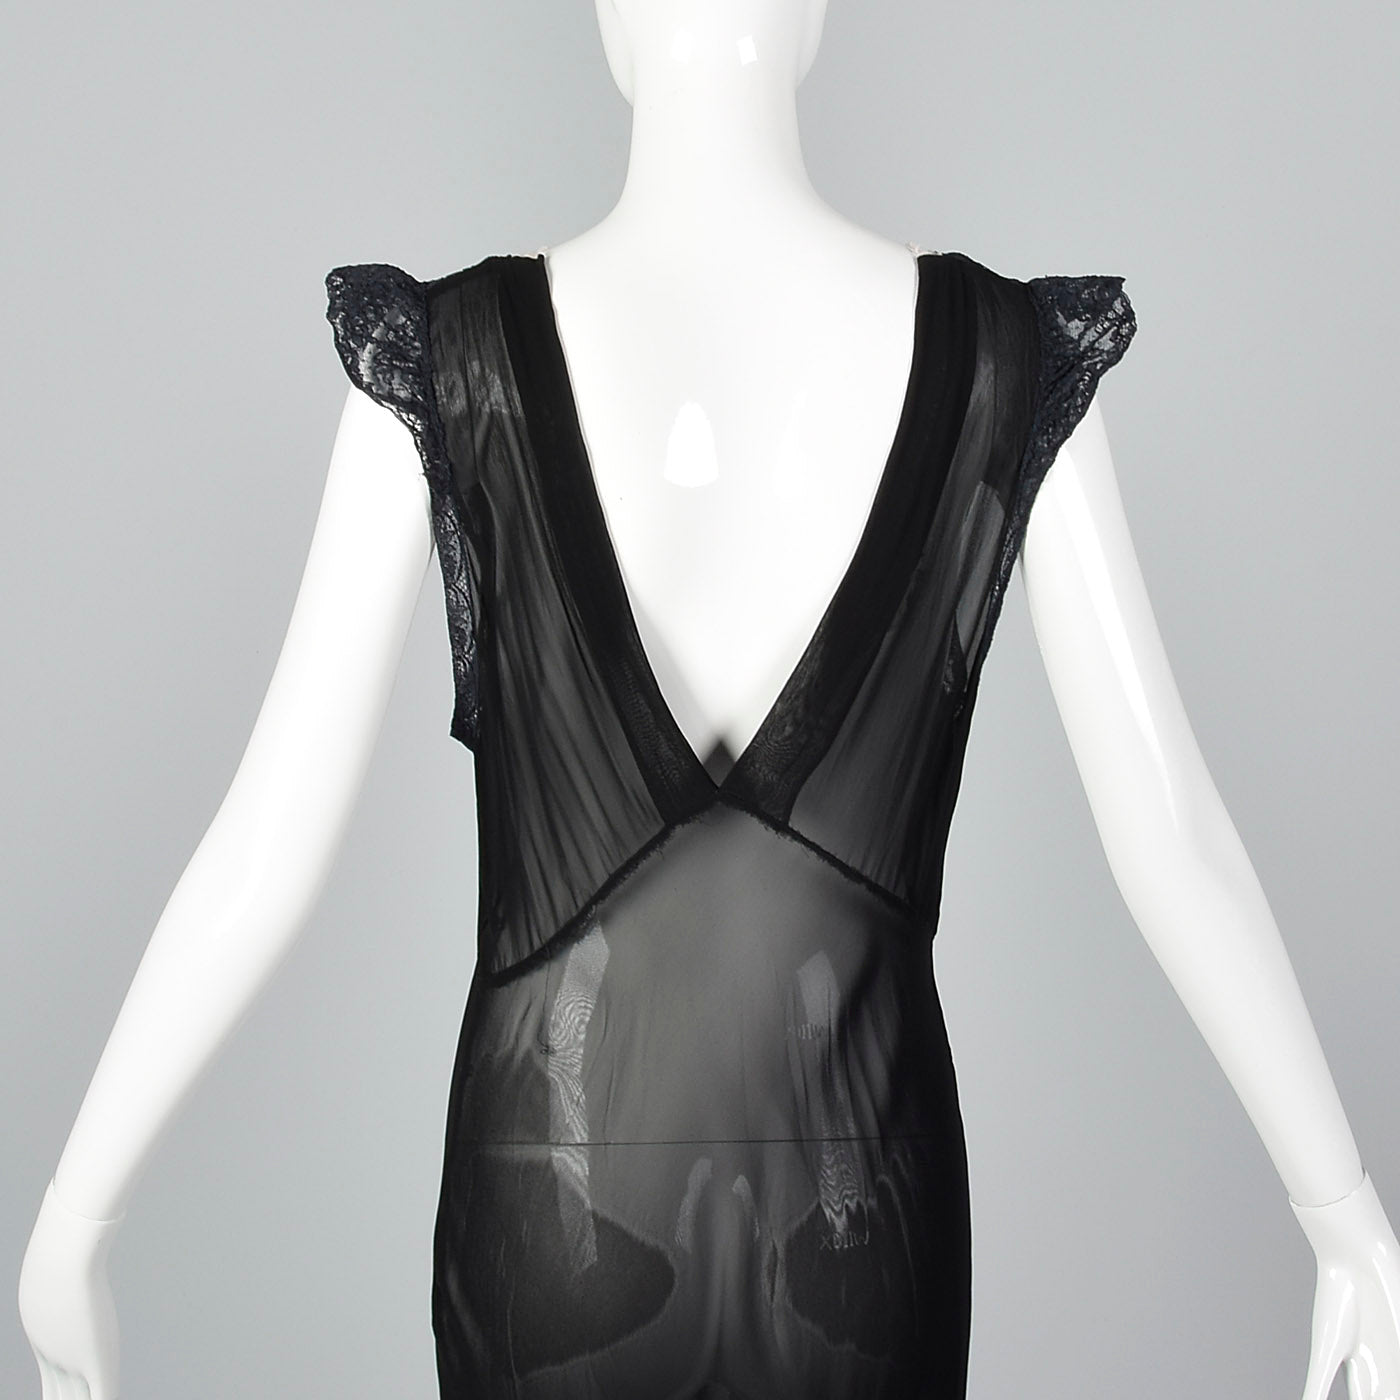 1930s Sheer Black Bias Cut Slip with White Trim